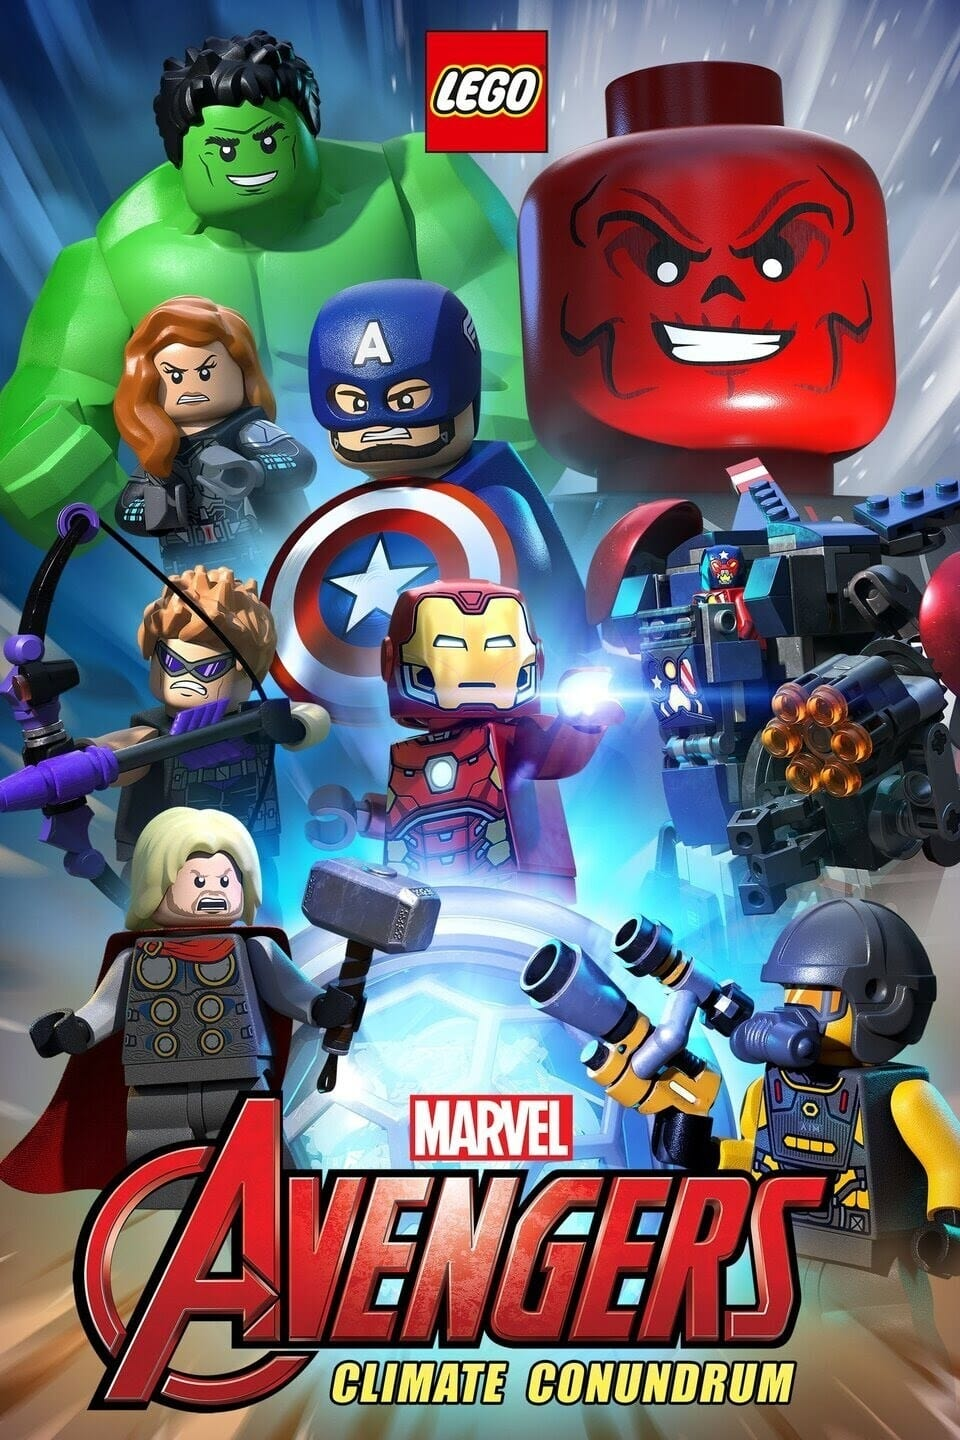 LEGO Marvel Avengers: Climate Conundrum TV Shows About Based On Comic